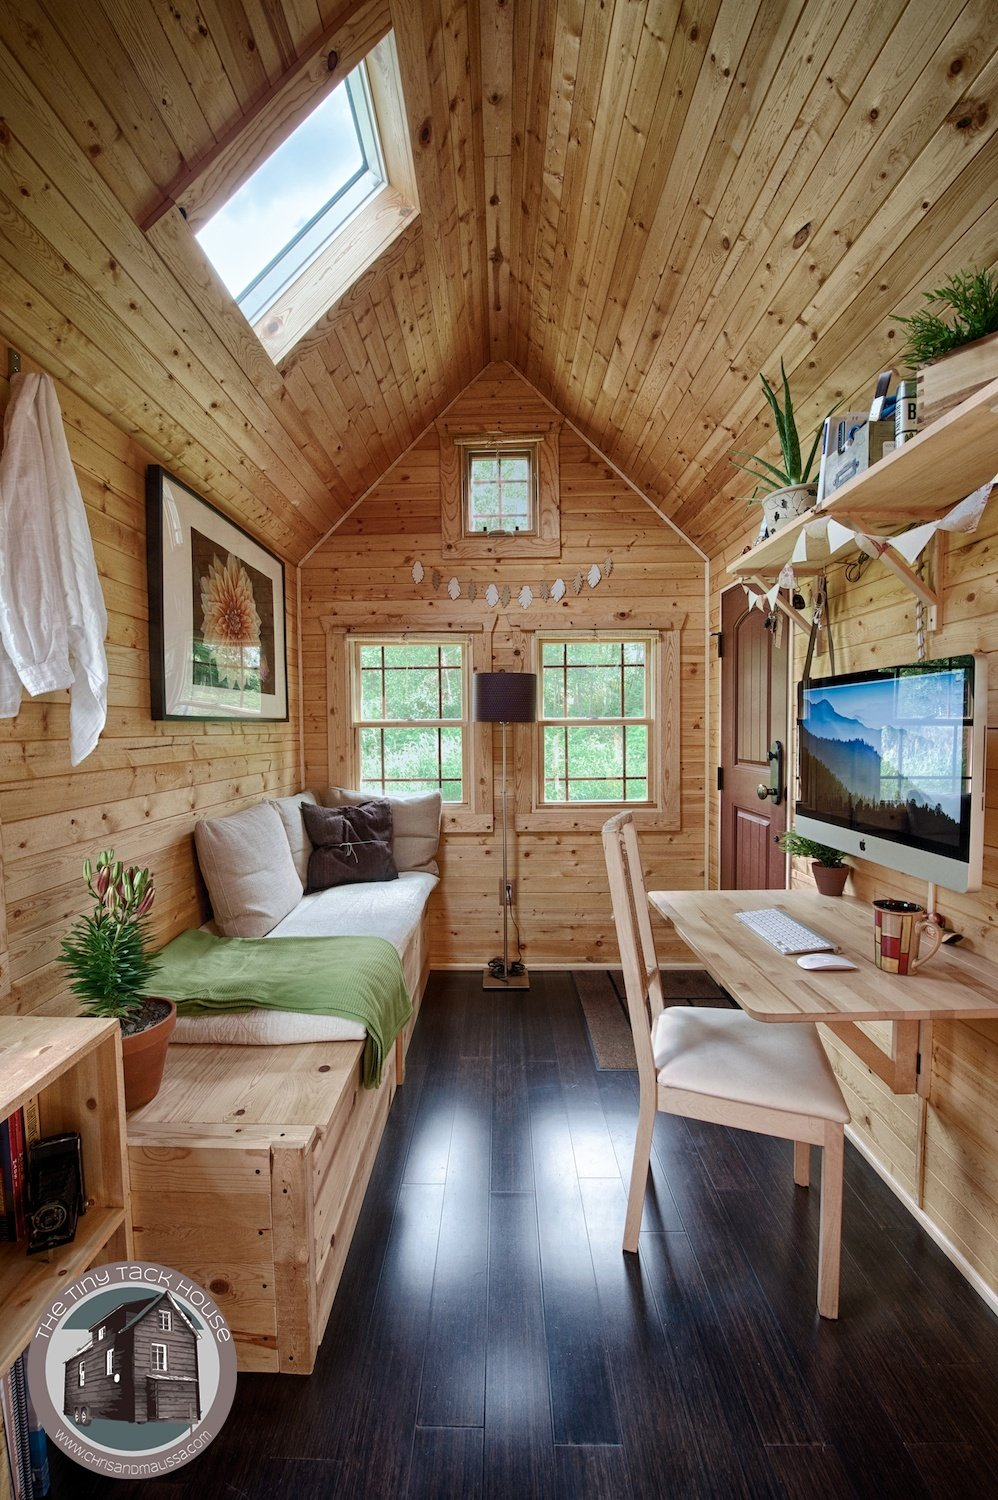 image via tiny tack house the tiny tack house - Tiny Dwellings